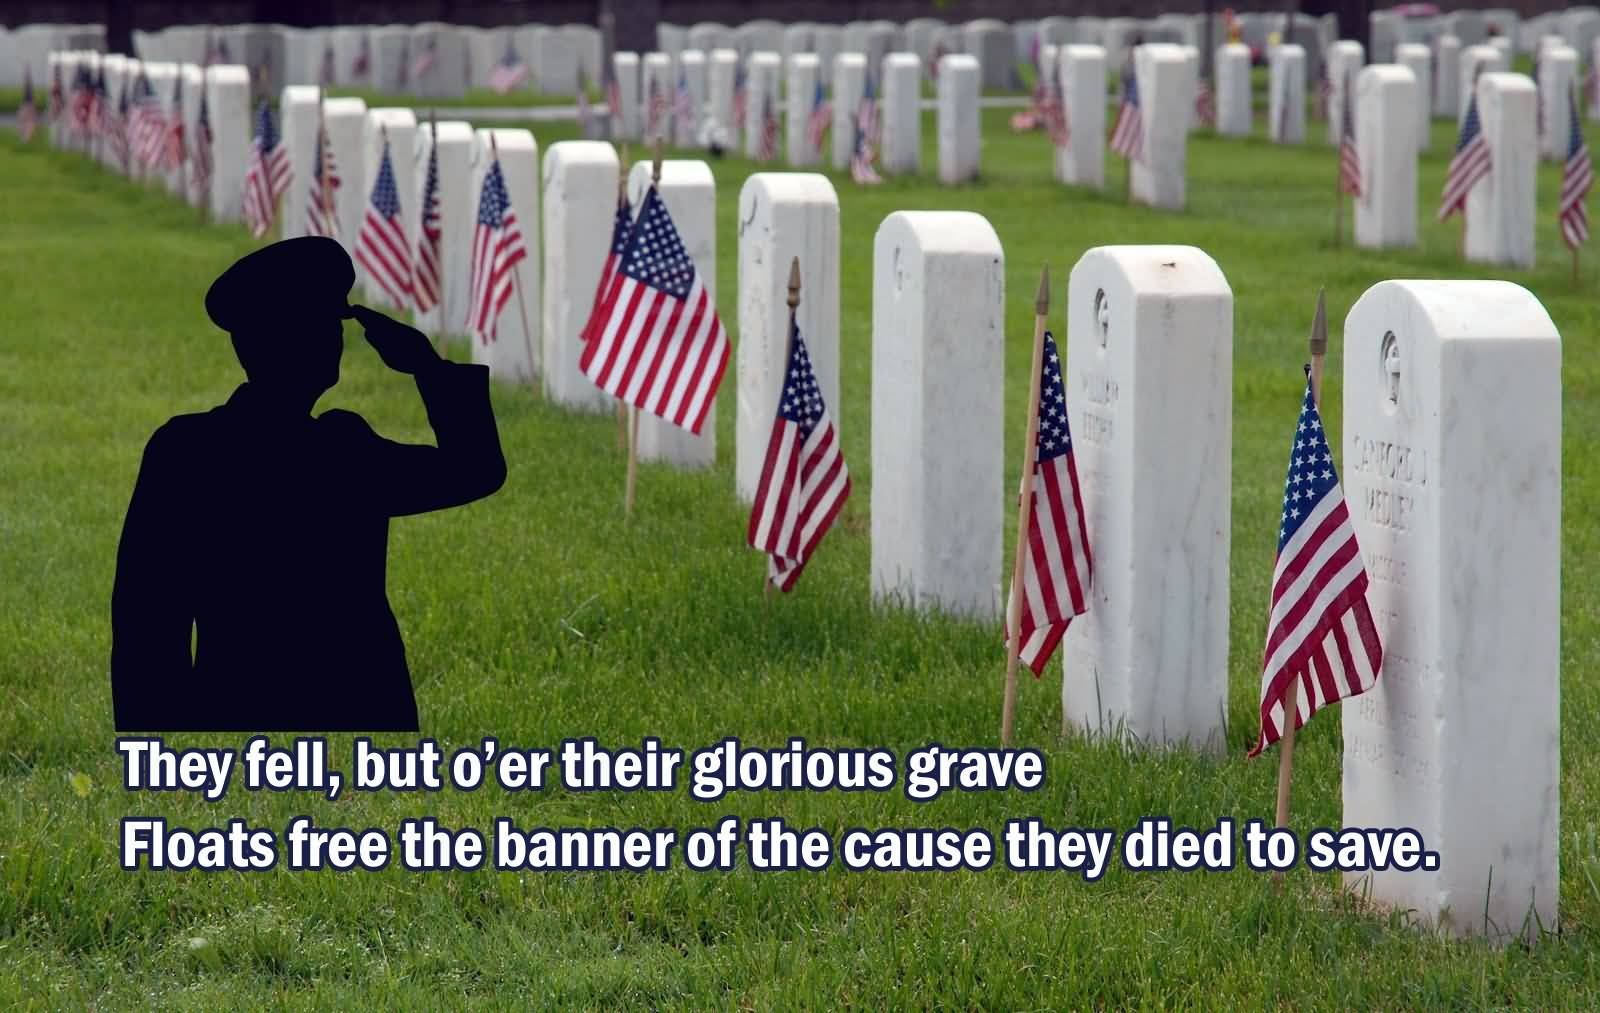 They-fell-but-oer-their-glorious-grave-floats-free-the-banner-of-the-cause-they-died-to-save..jpg